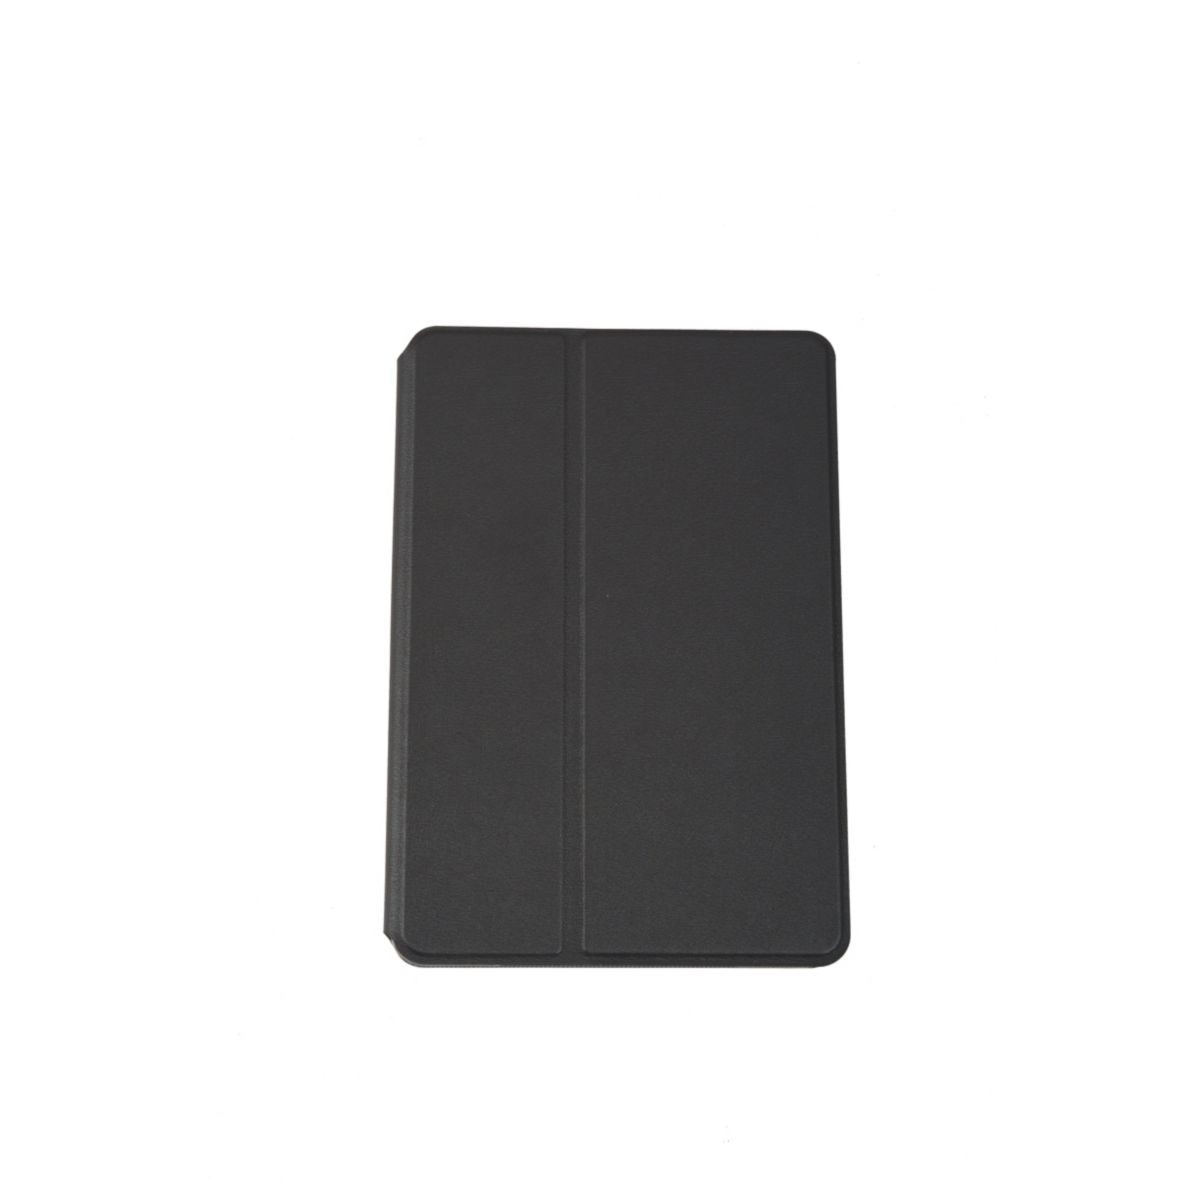 Folio ESSENTIELB iPad Mini 2 stand Noir (photo)